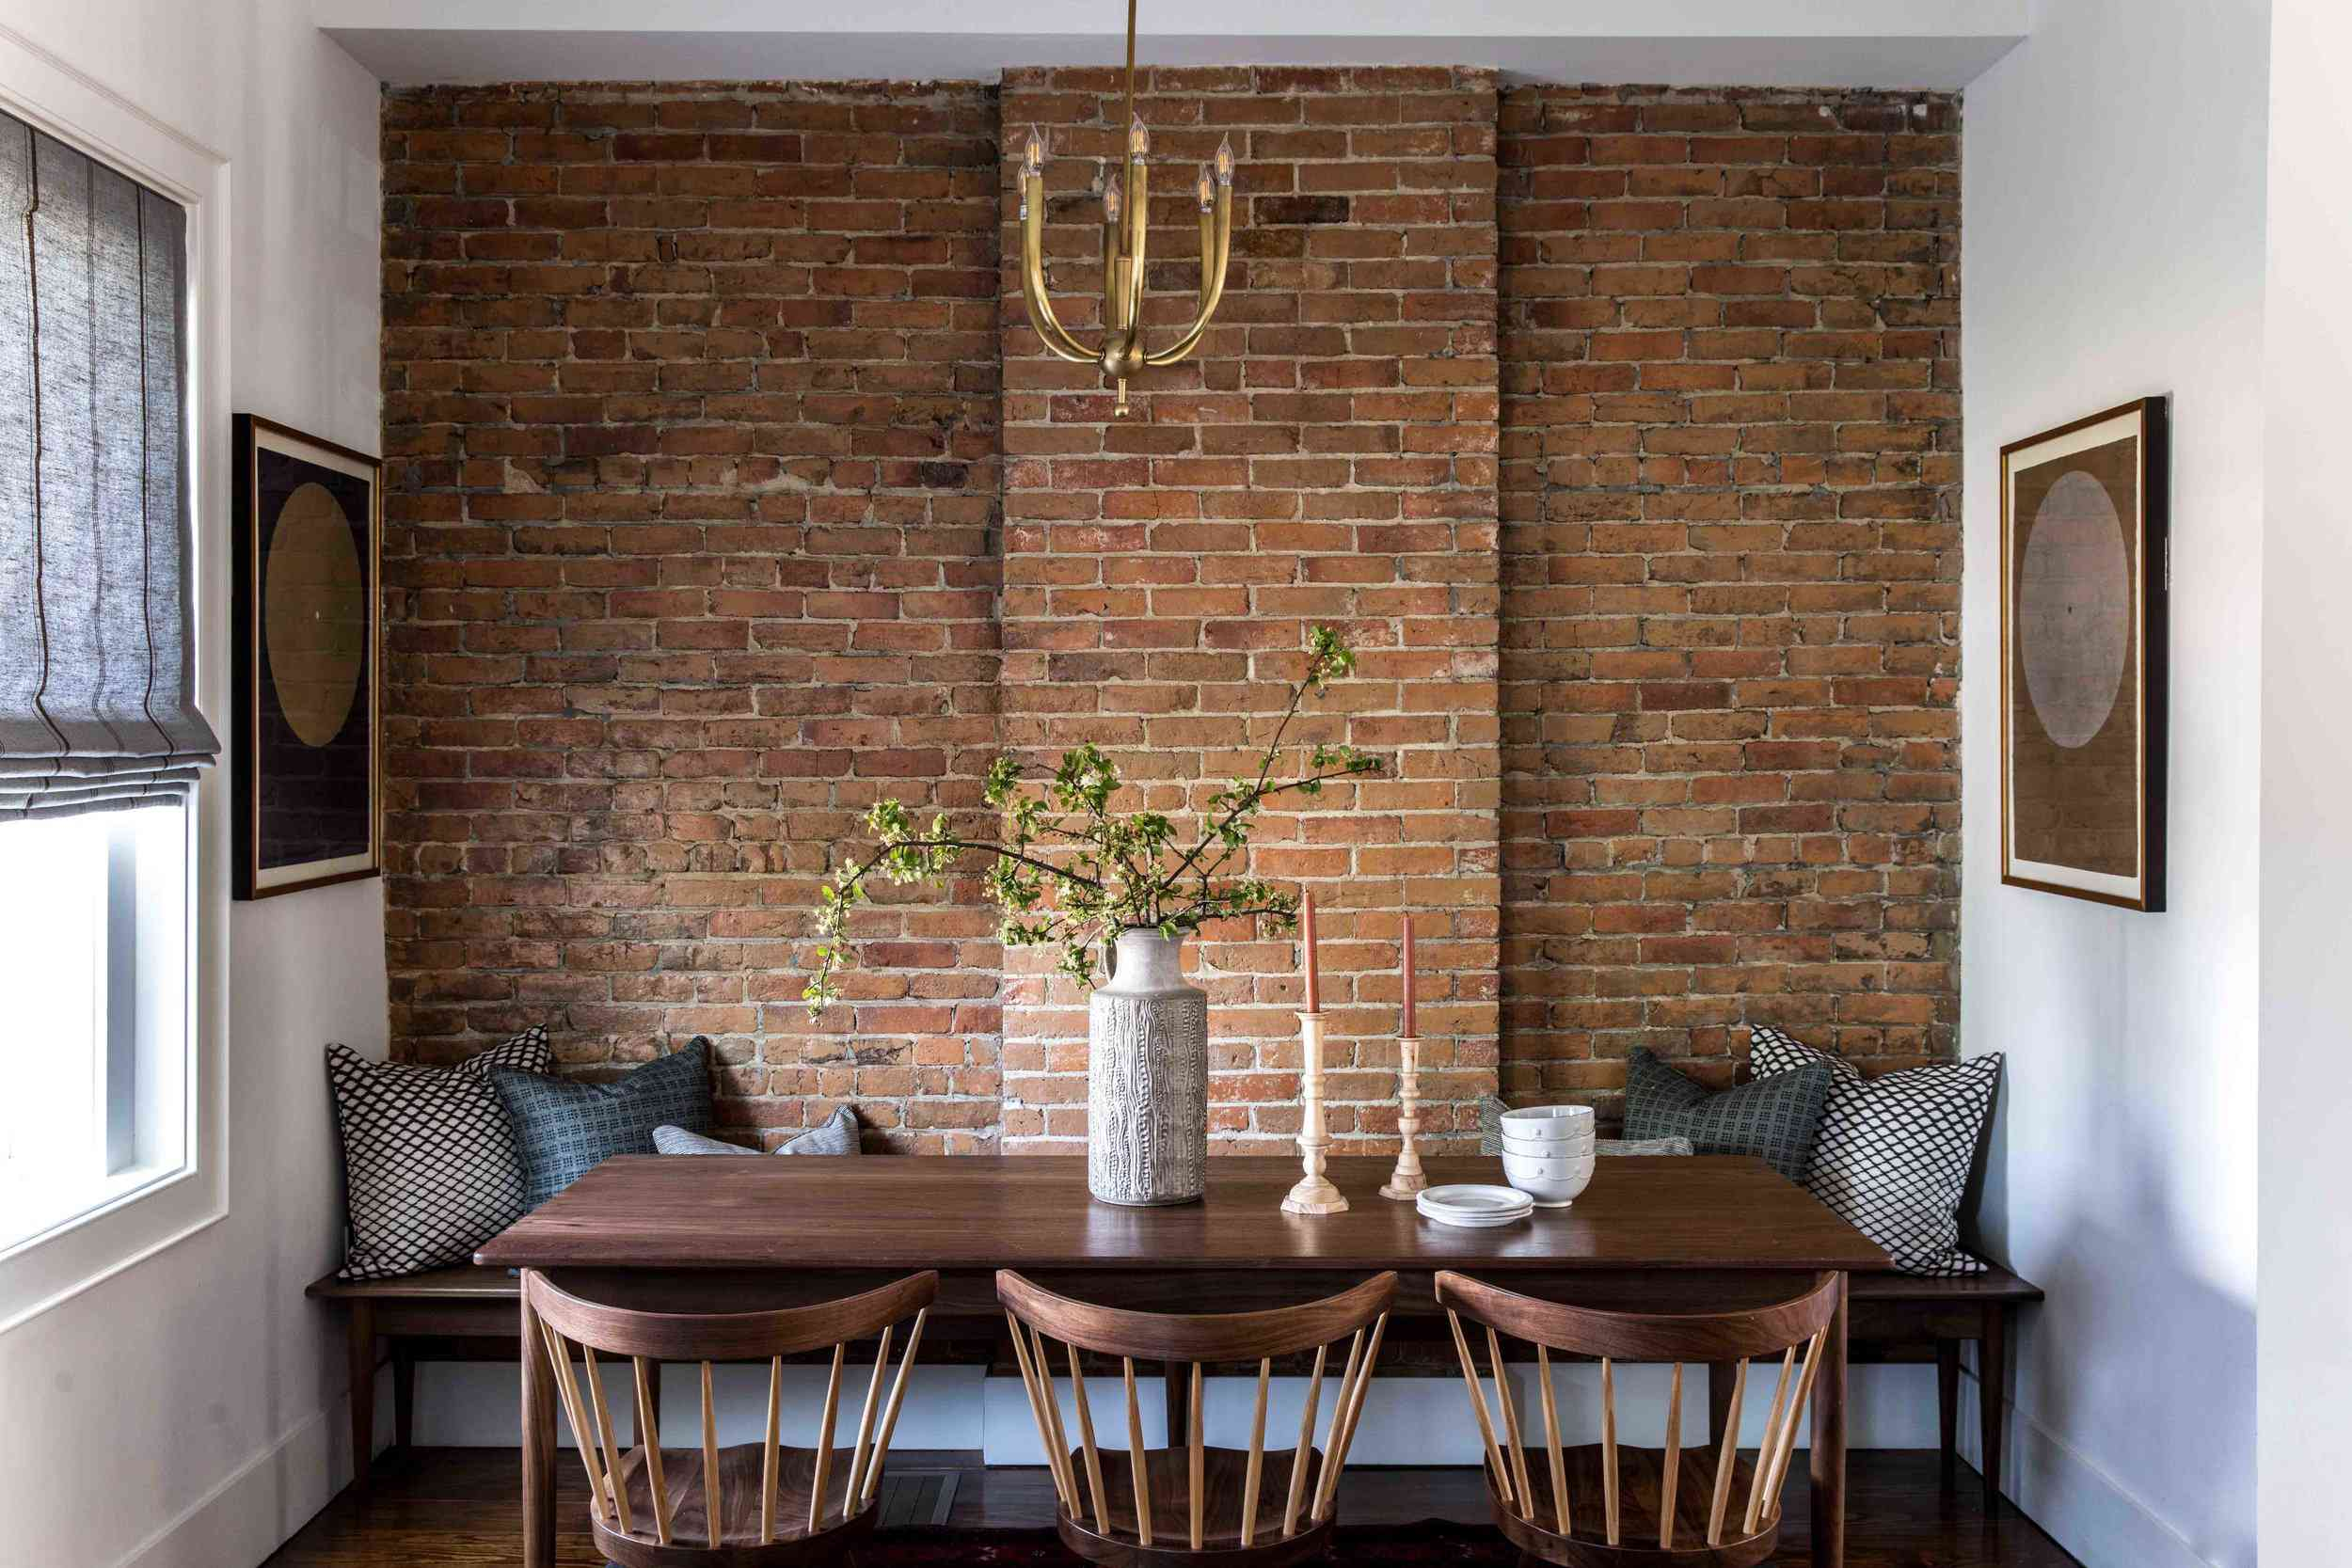 A dining room with high ceilings and a small metal chandelier